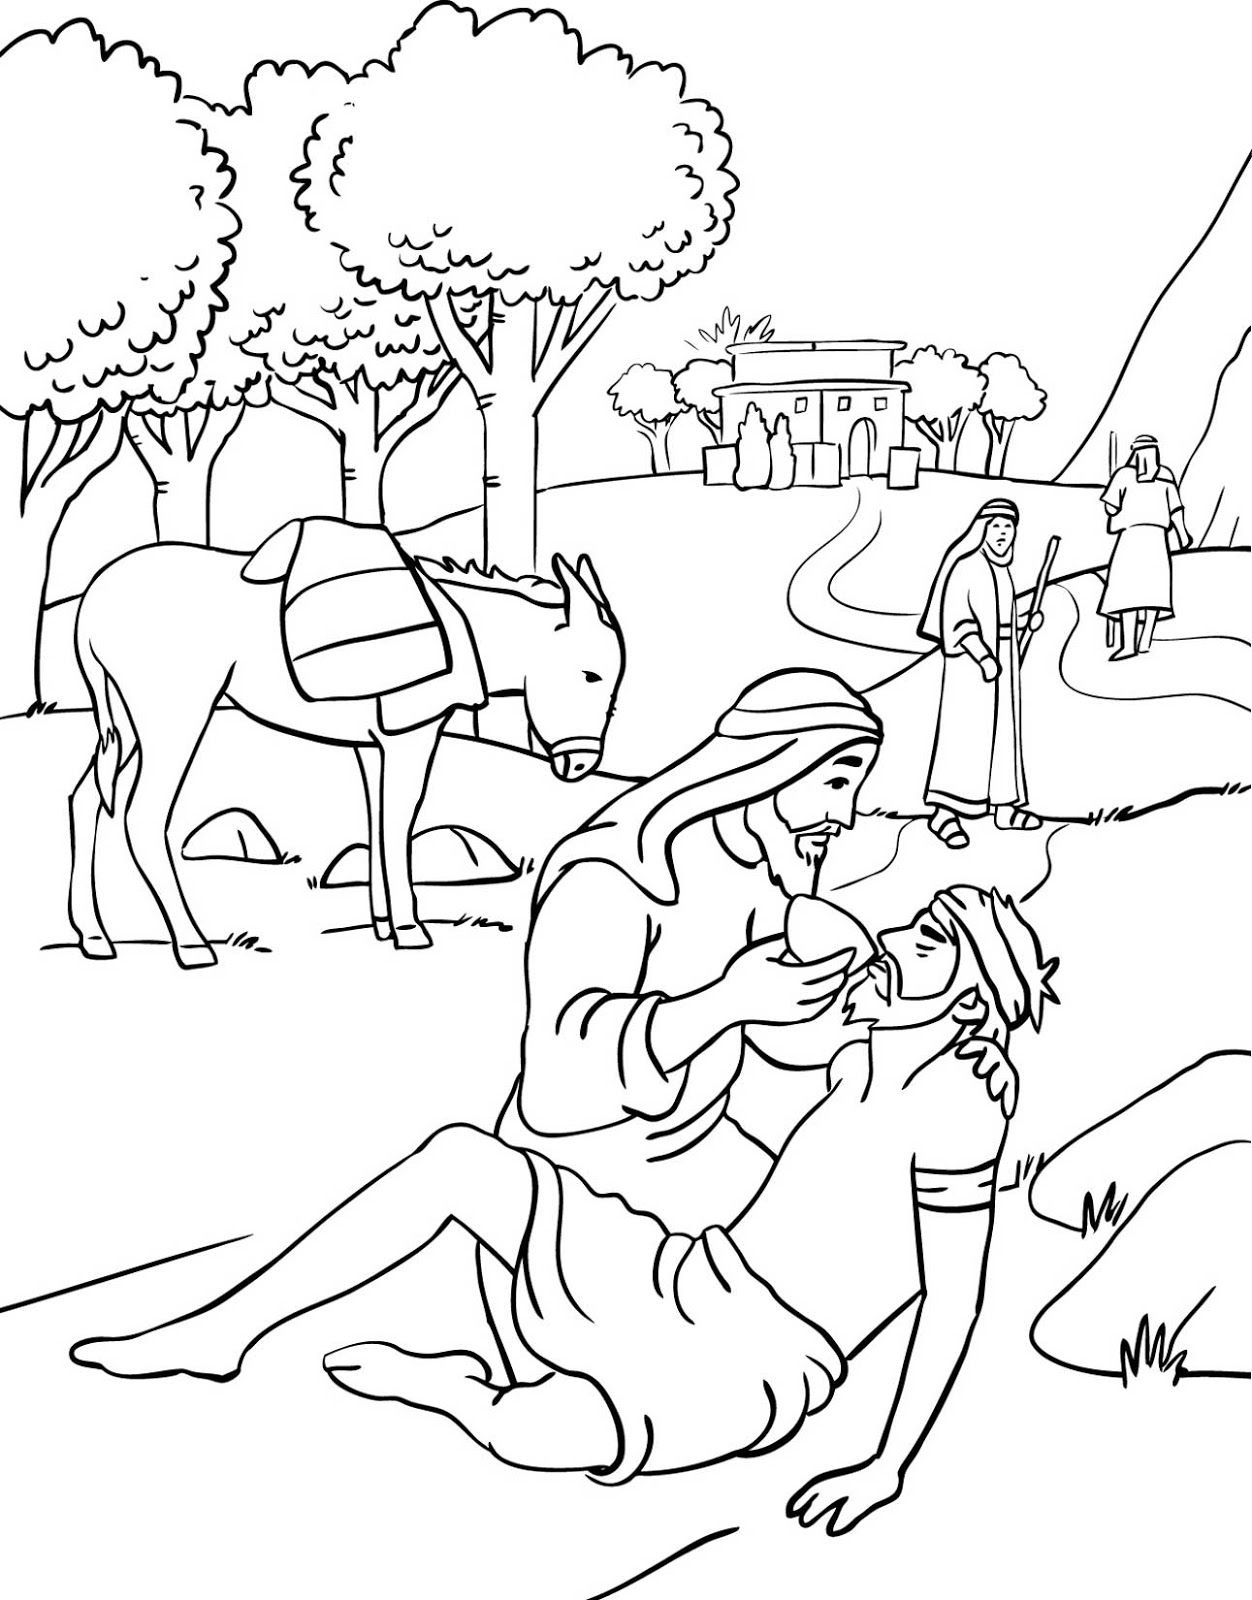 coloring pages for bible stories noah39s ark on pinterest noah ark bible stories and free for bible stories pages coloring